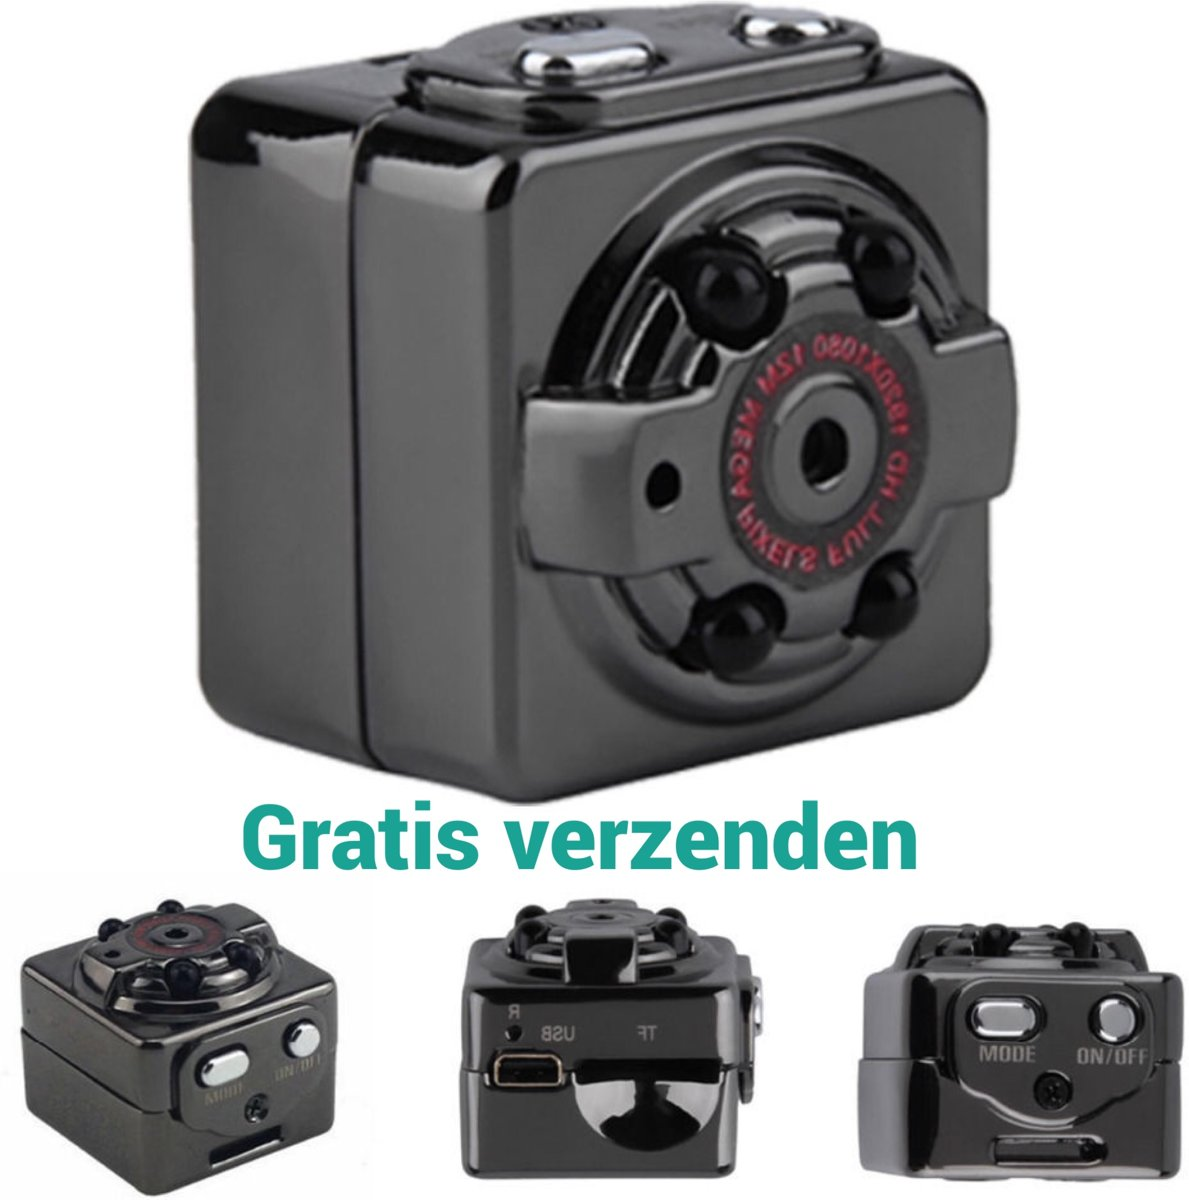 Saizi Verborgen (knoop)  dashcam  FULL HD 1080P - Mini cube - Spy camera kopen